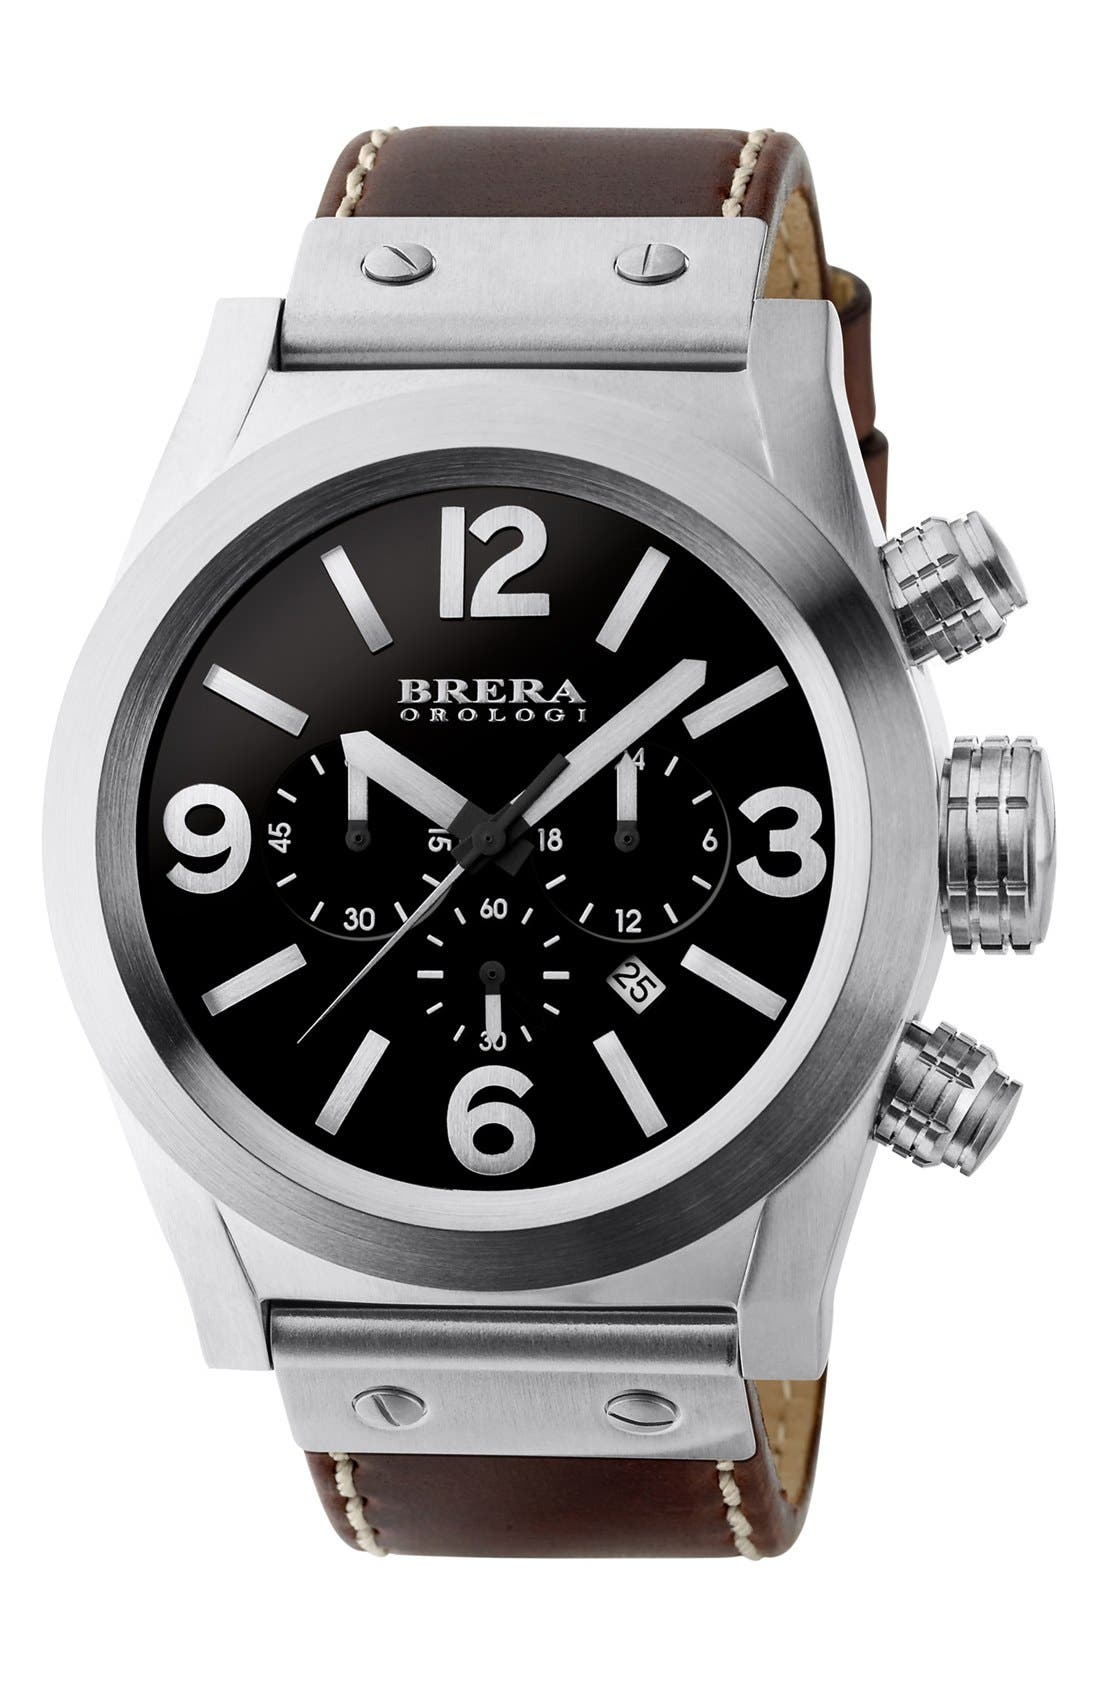 Main Image - Brera 'Eterno Chrono' Chronograph Leather Strap Watch, 45mm